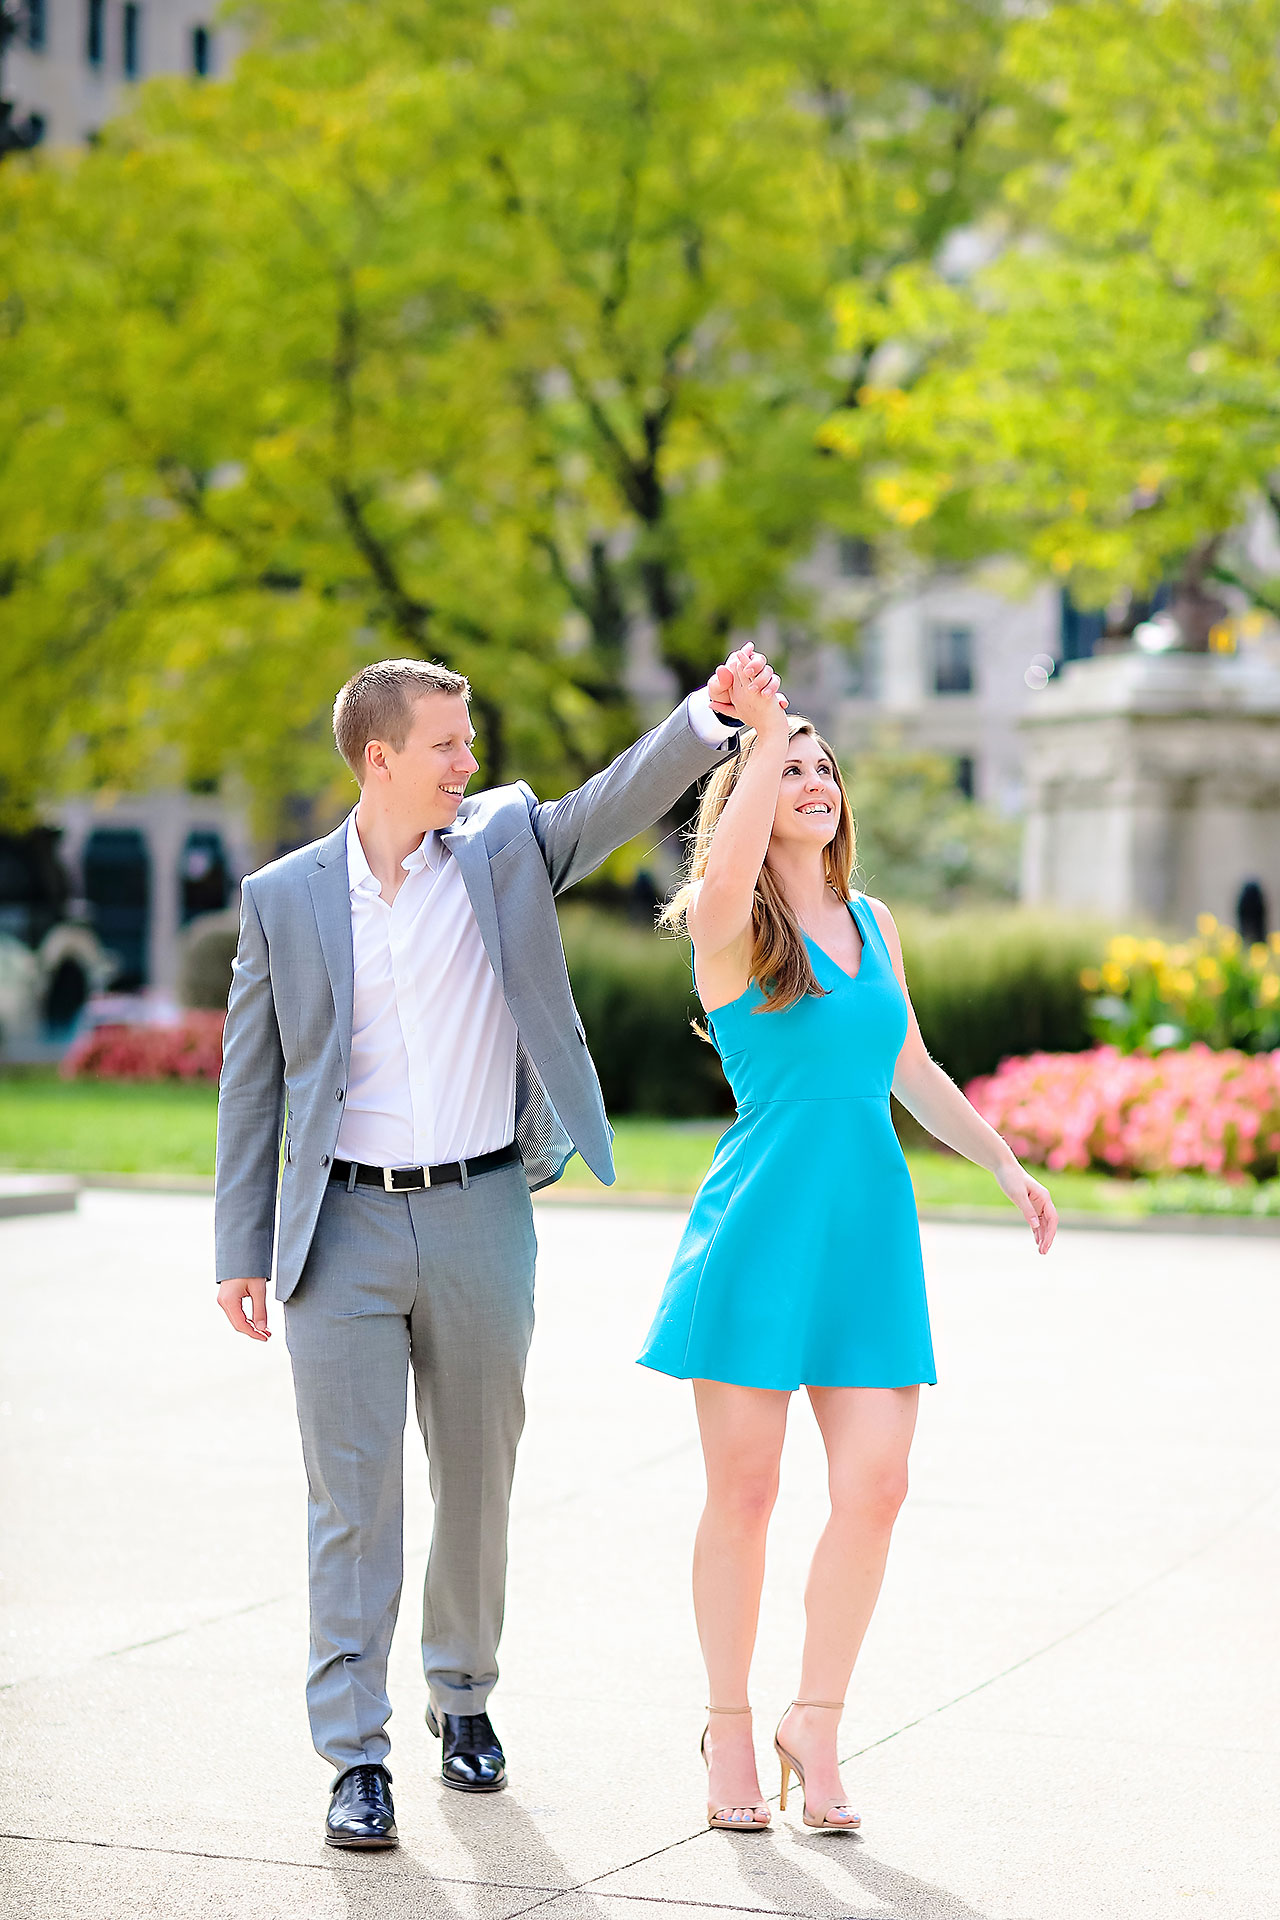 Chelsea Jeff Downtown Indy Engagement Session 081